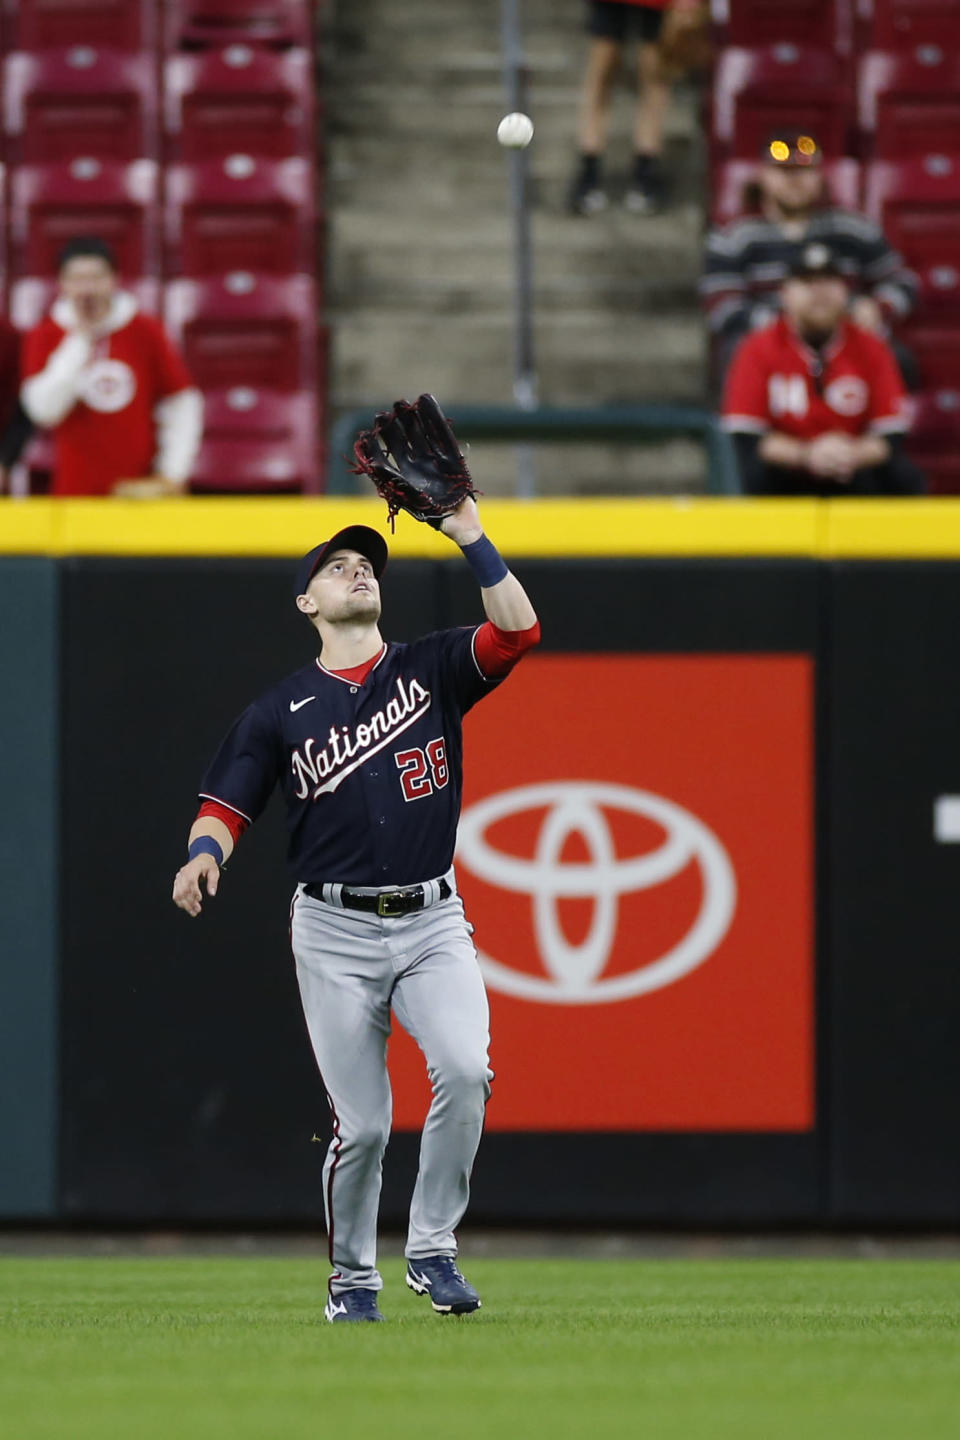 Washington Nationals' Lane Thomas catches a fly ball by the Cincinnati Reds during the ninth inning of a baseball game Thursday, Sept. 23, 2021, in Cincinnati. (AP Photo/Jay LaPrete)